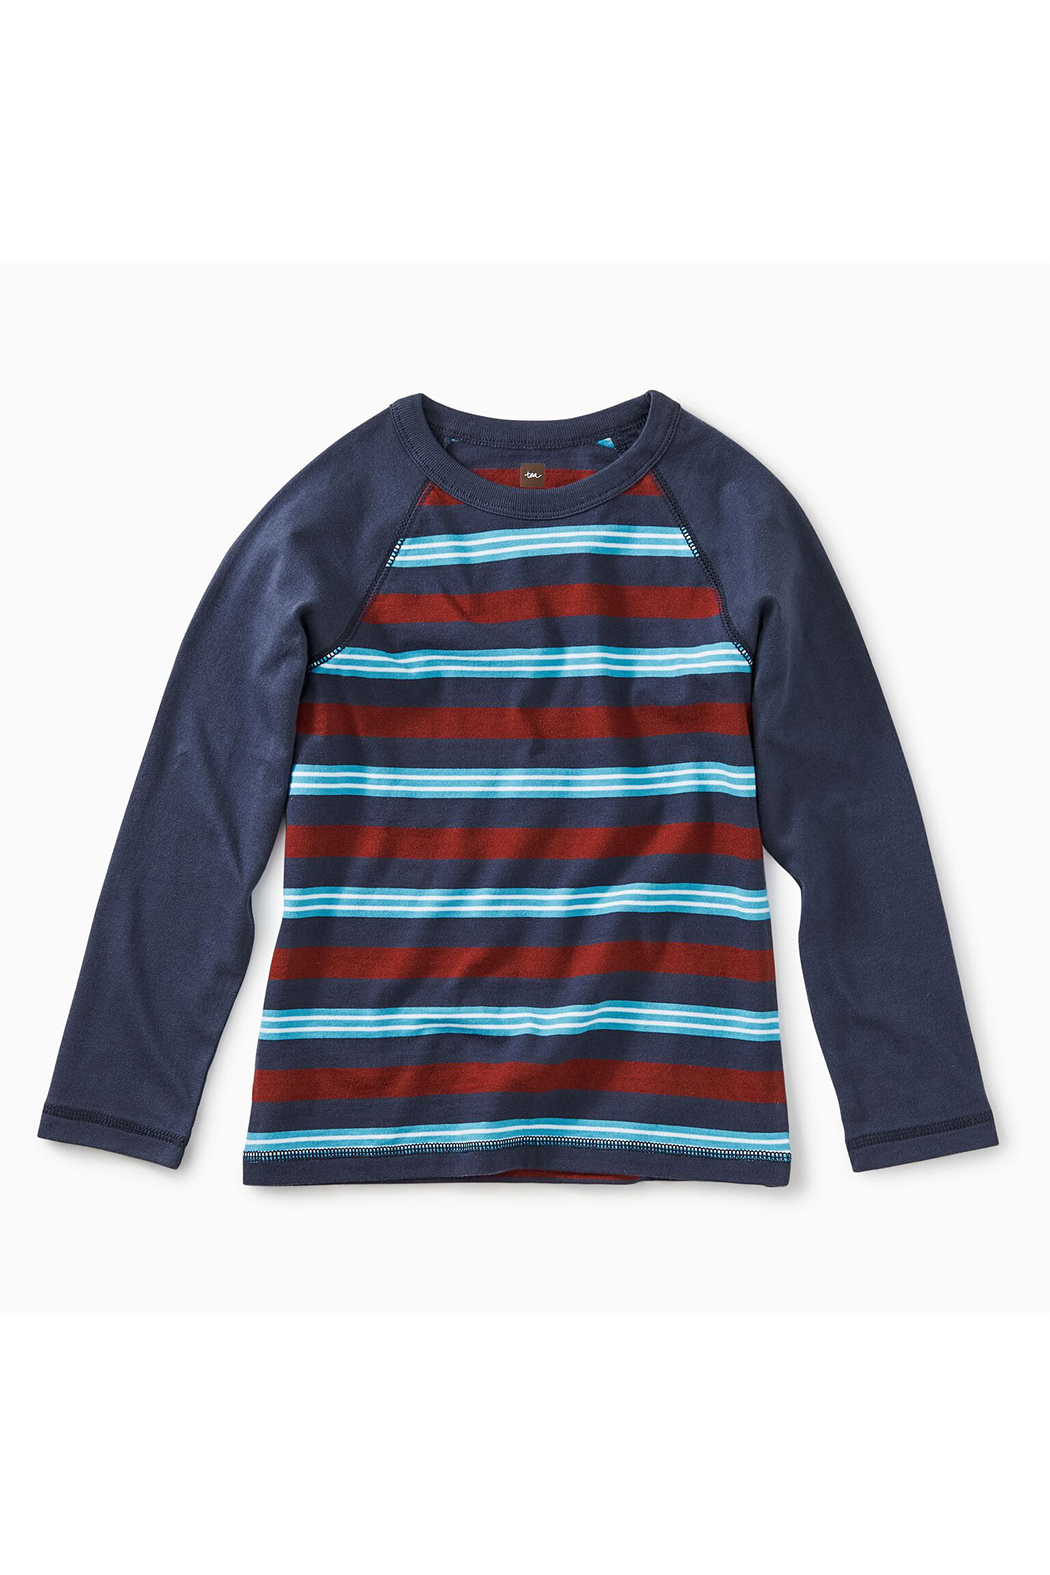 Tea Collection Striped Raglan Tee - Main Image